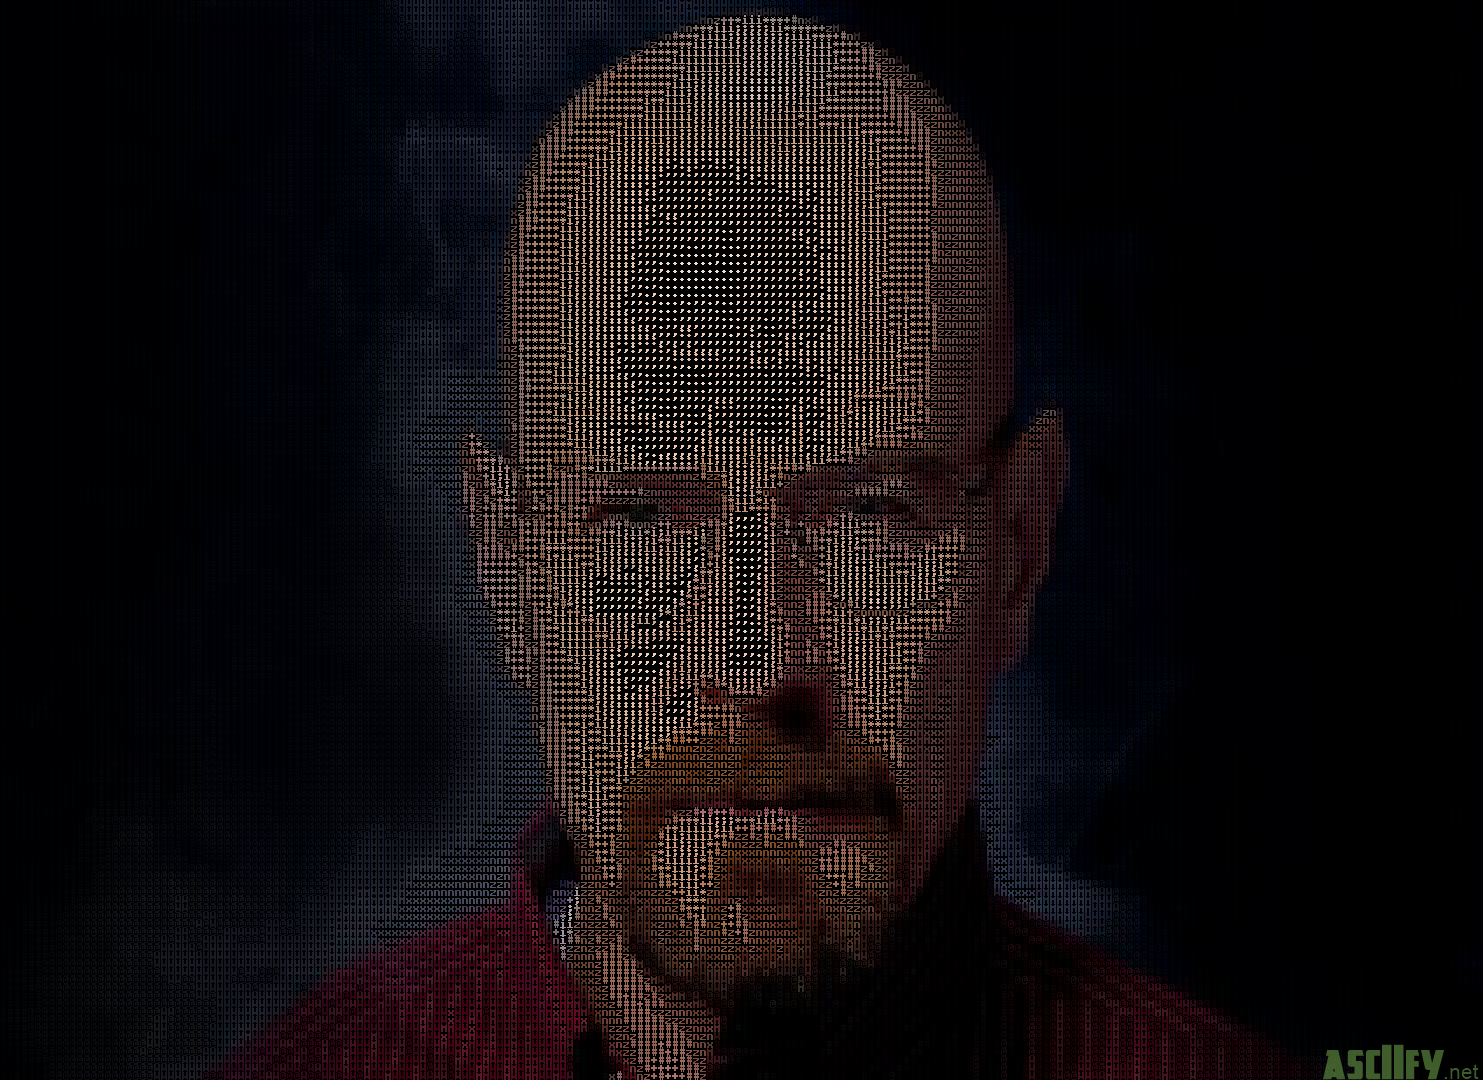 Walter white black background